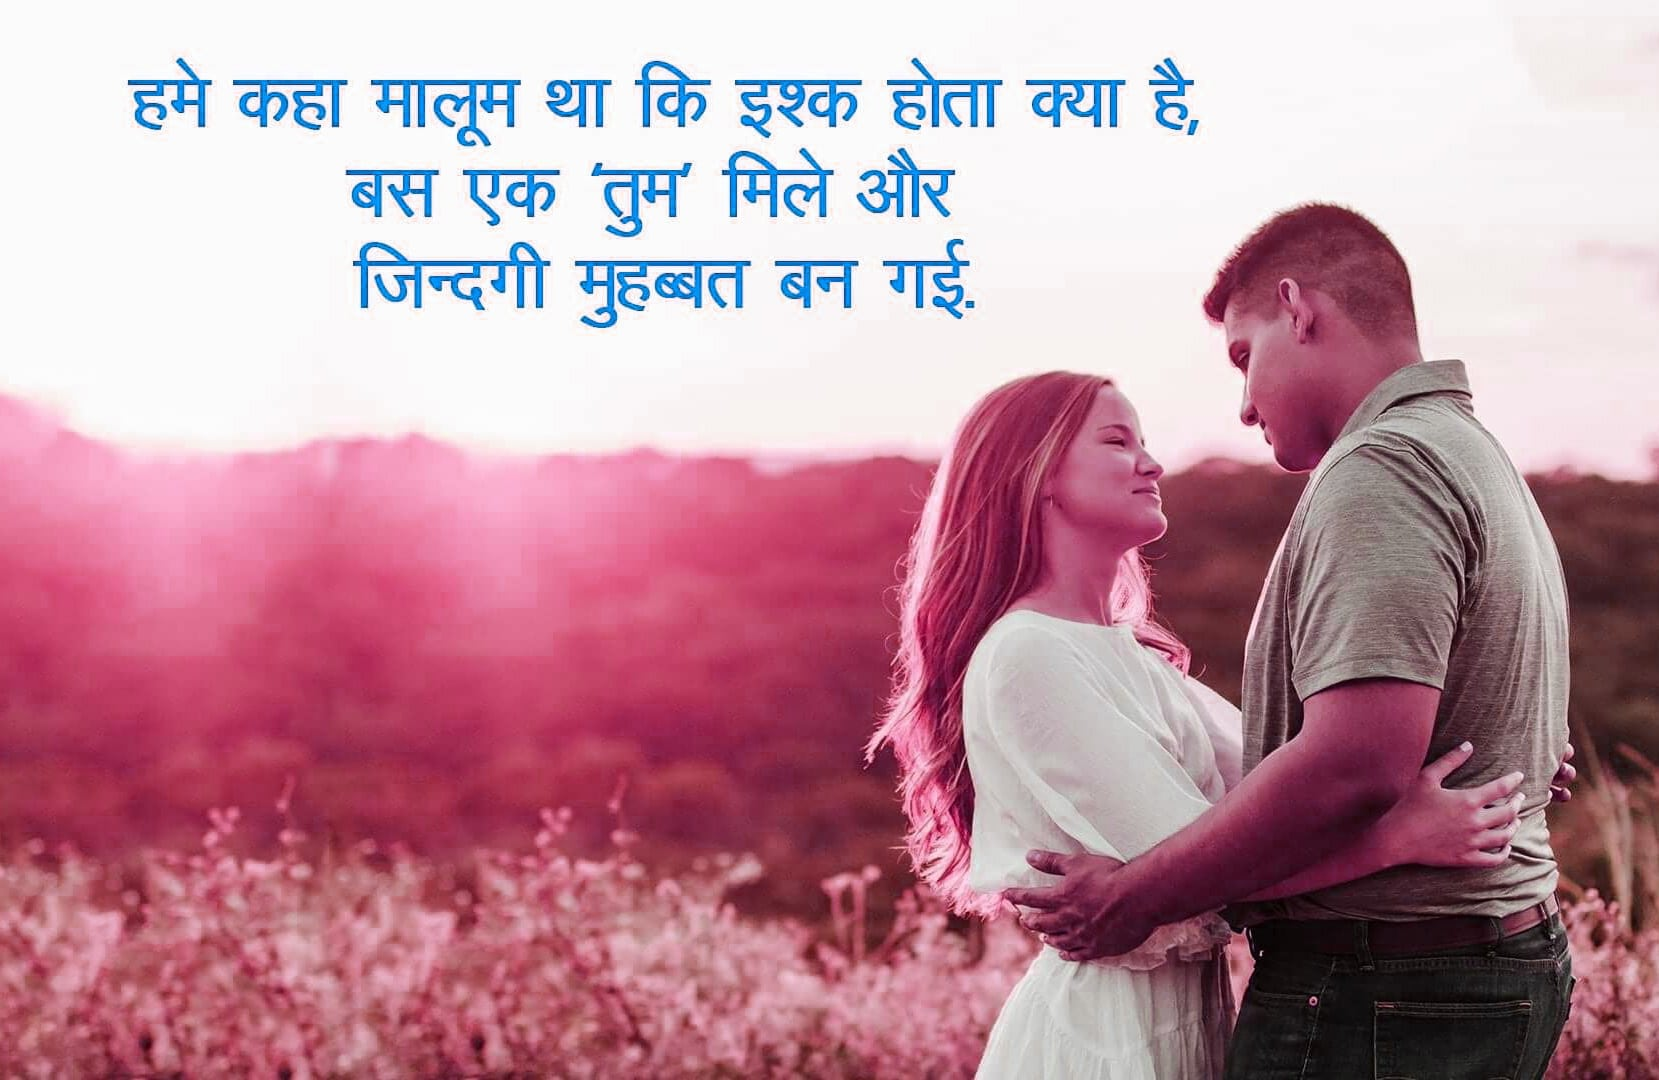 Awesome Whatsapp DP Images 12